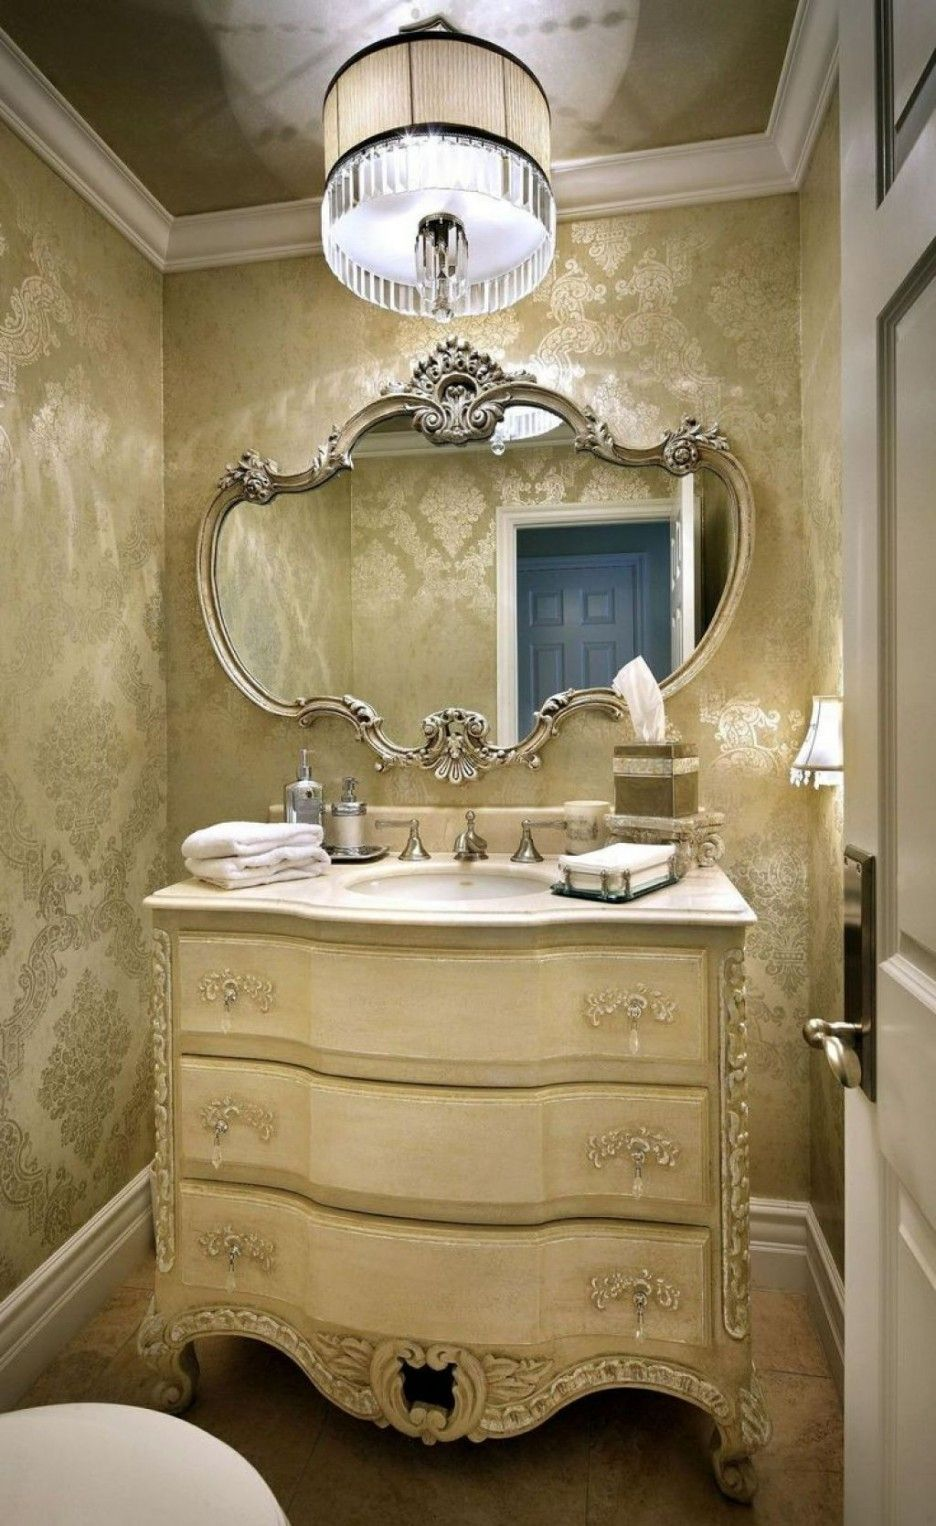 Luxury Stylish Powder Rooms Vanity Decoration Elegant Room Gold Nuance Feature Pretty